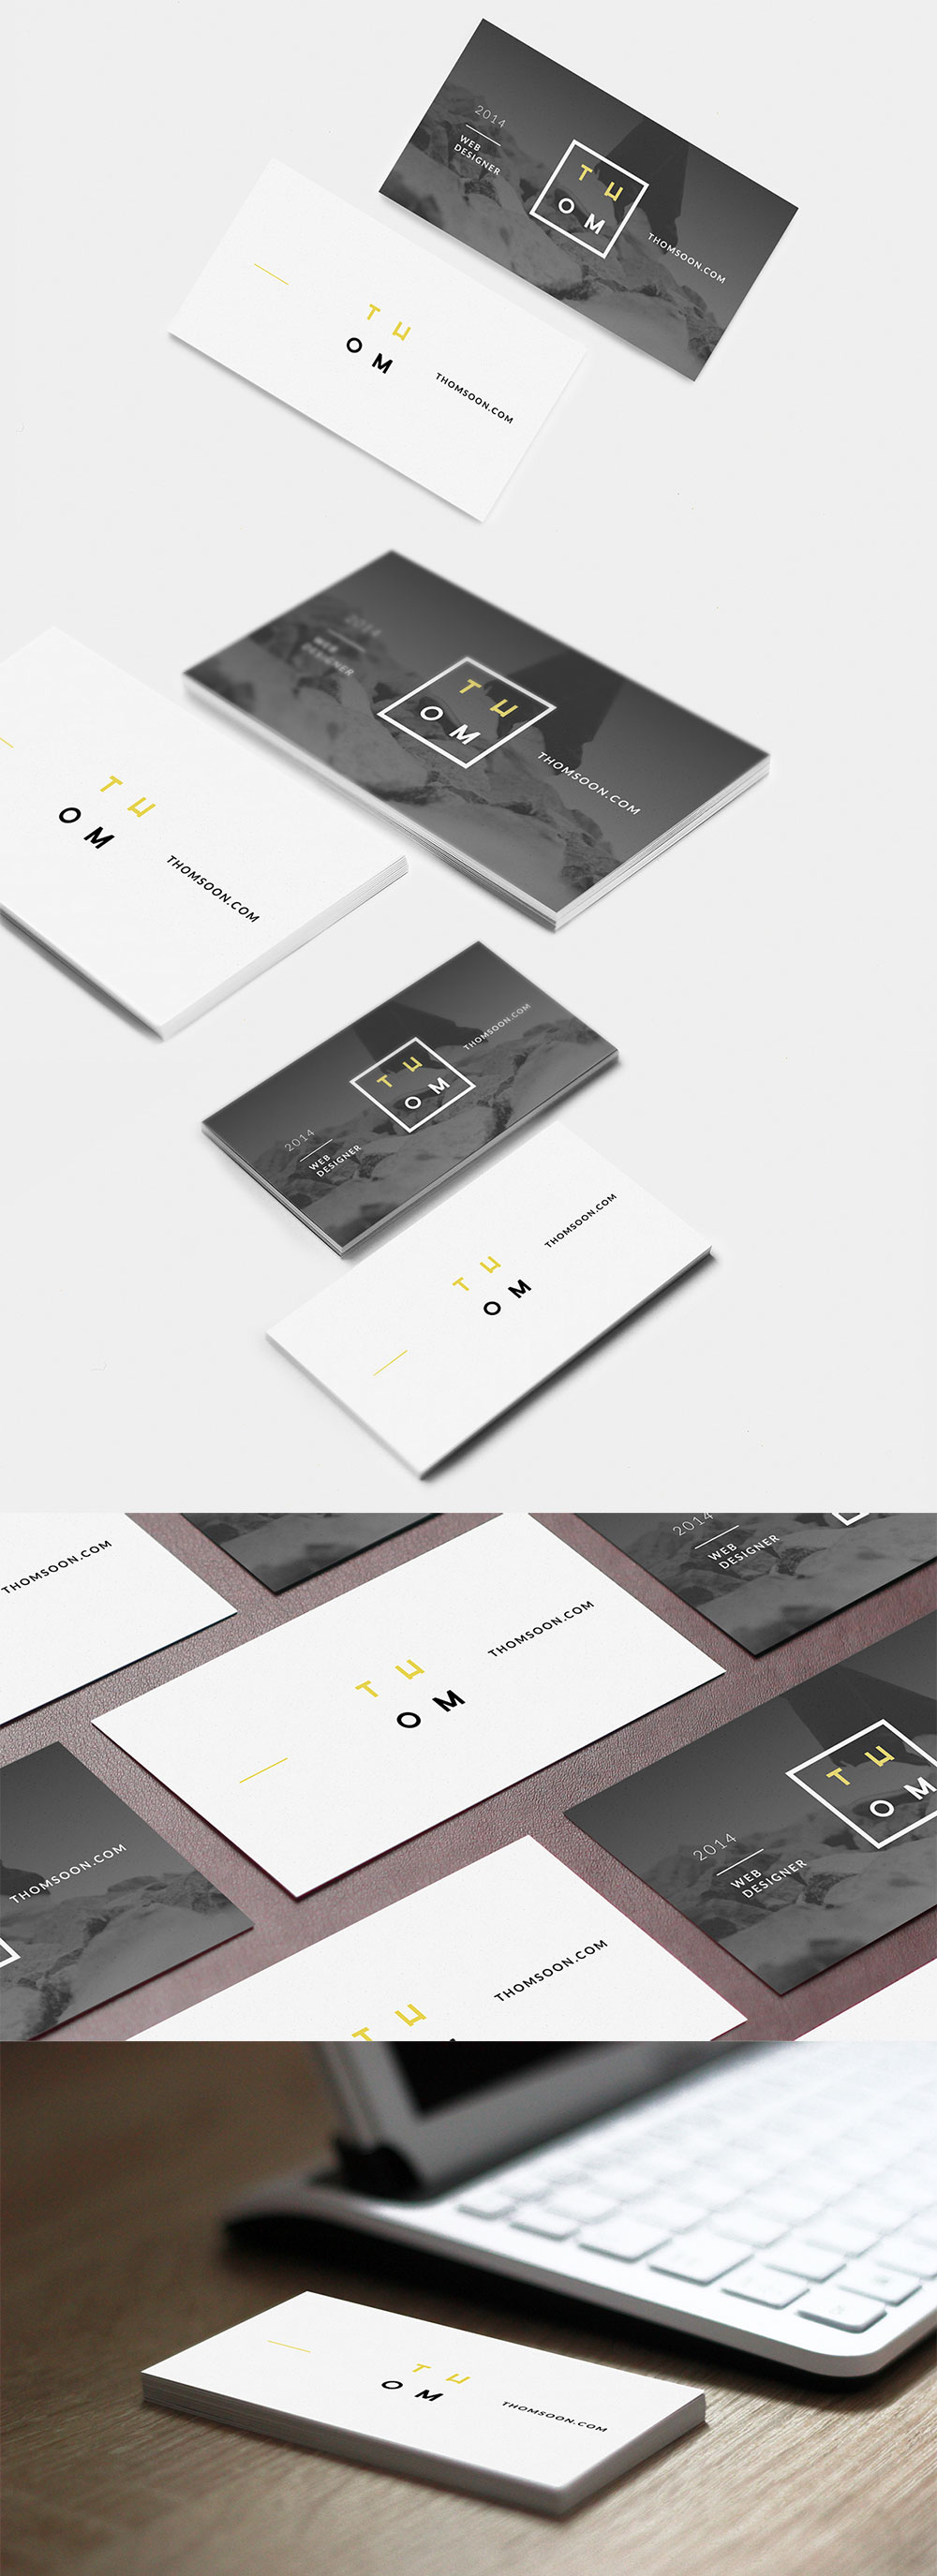 7 free business card mockups graphicsfuel